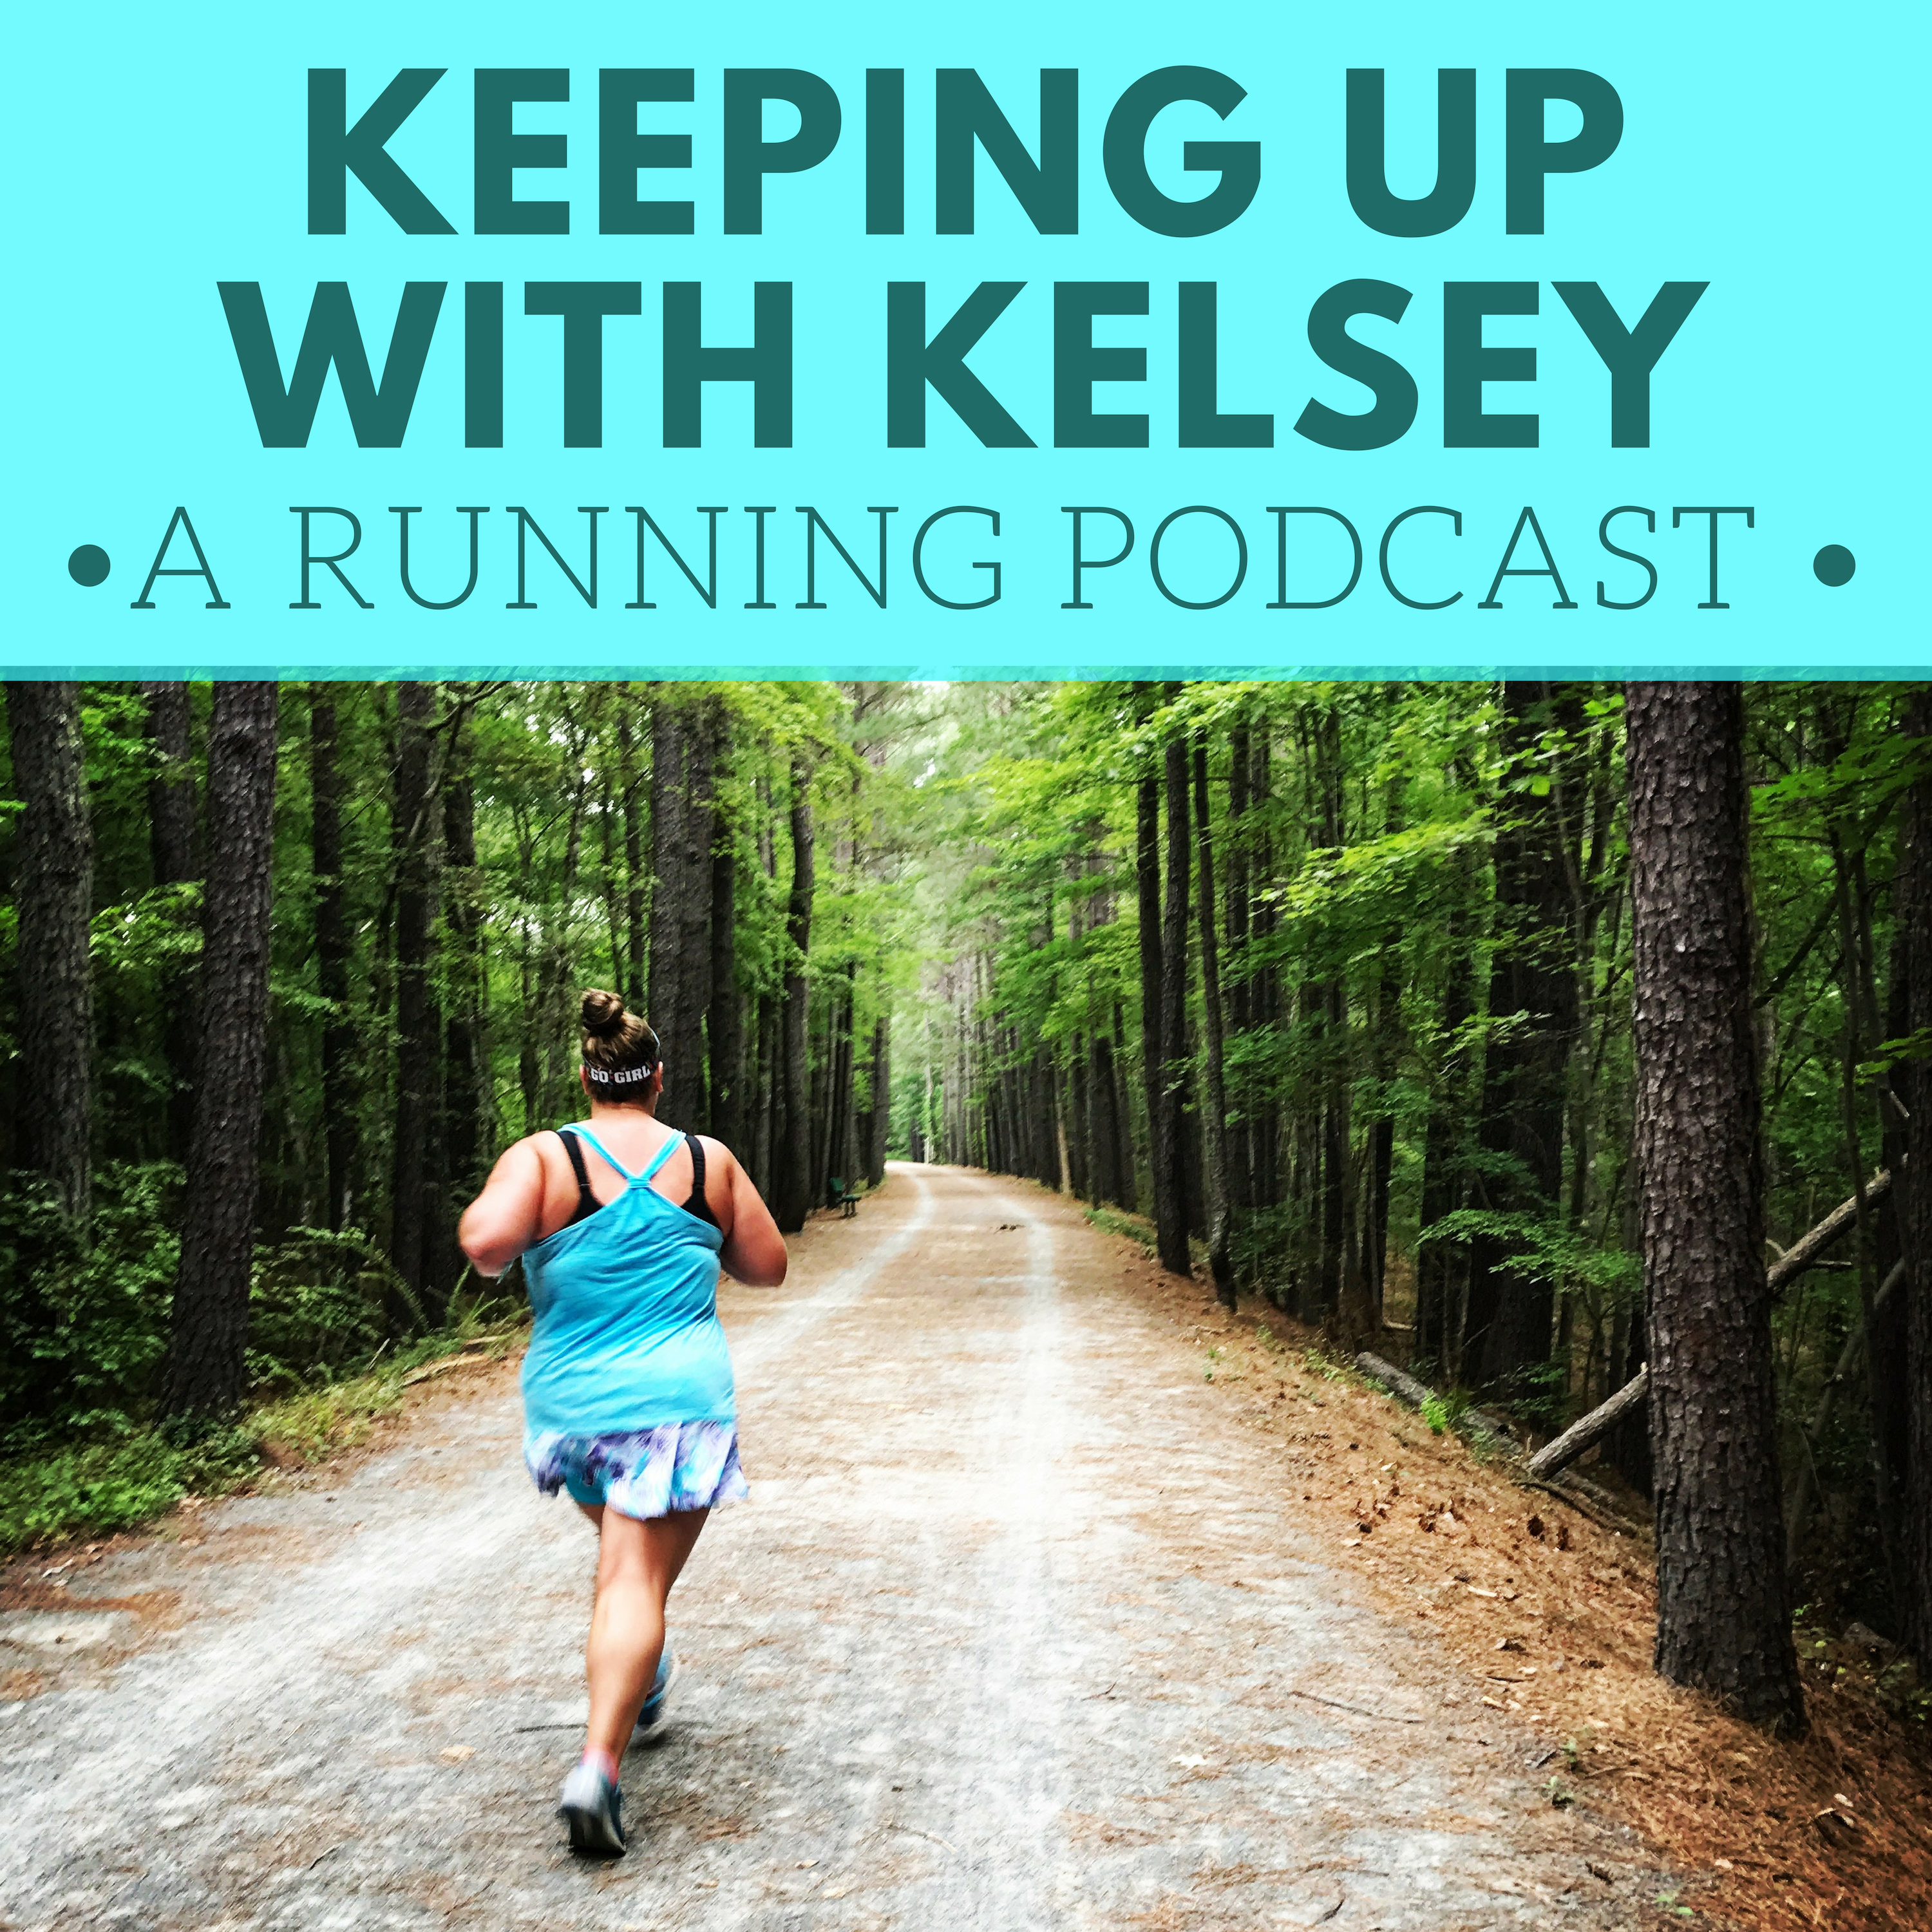 Keeping Up with Kelsey: A Running Podcast show art